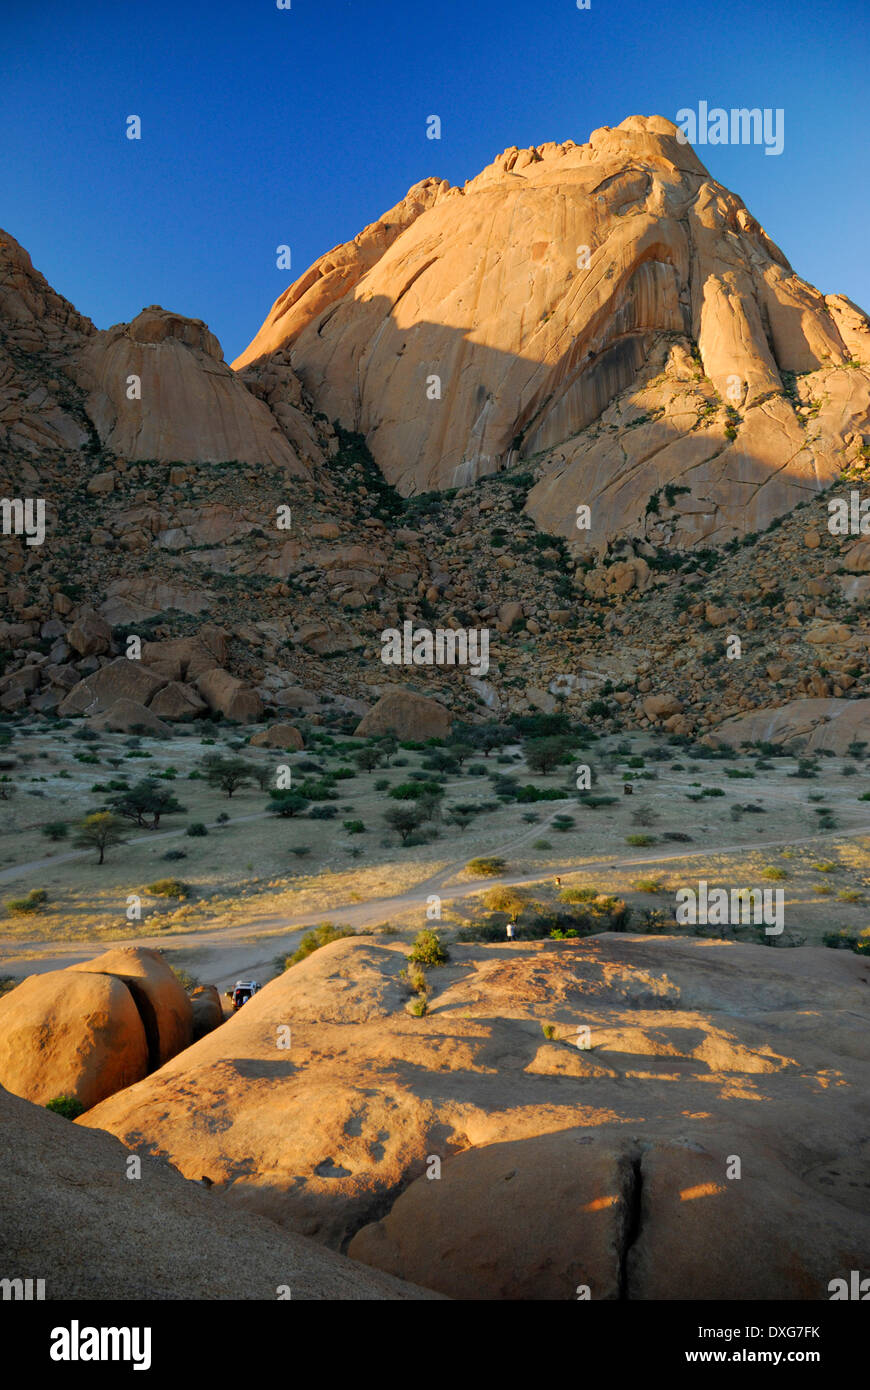 Sout West face of  Great Spitzkoppe, Namibia - Stock Image